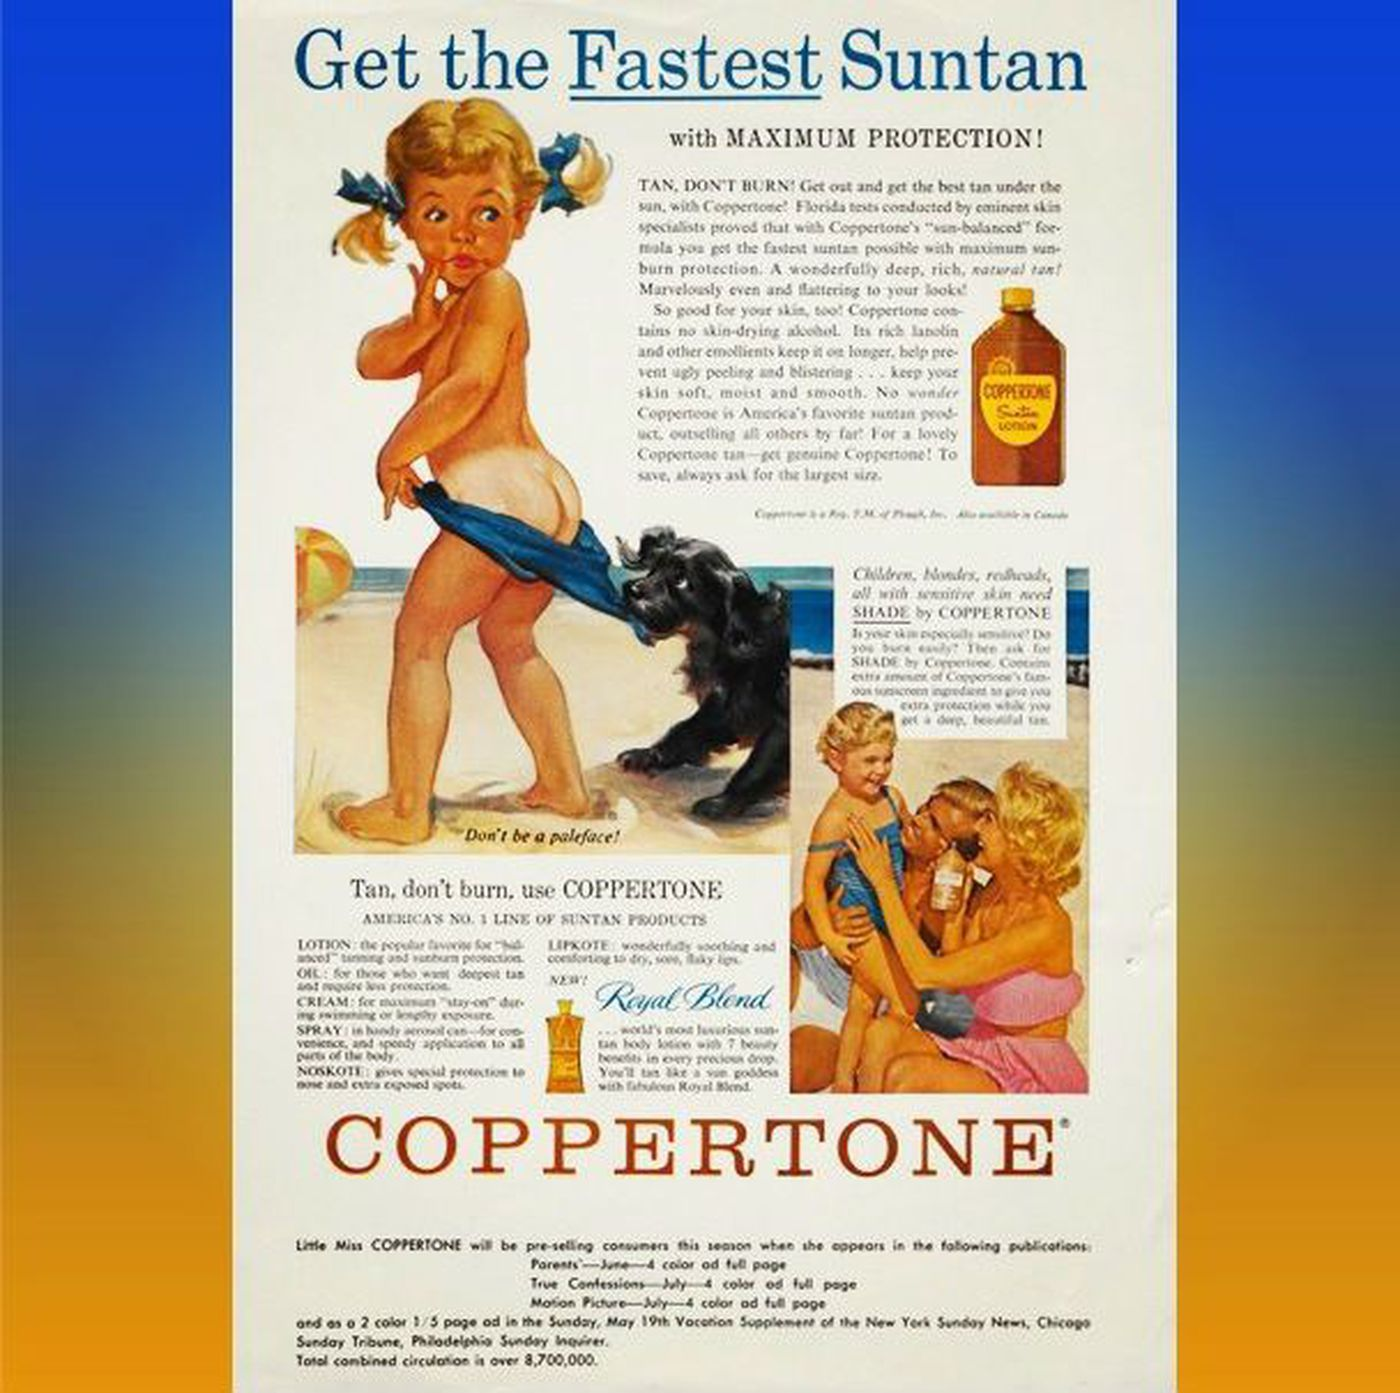 """Ad featuring the 1953 version of the """"Coppertone girl"""" Source Coppertone s Instagram"""